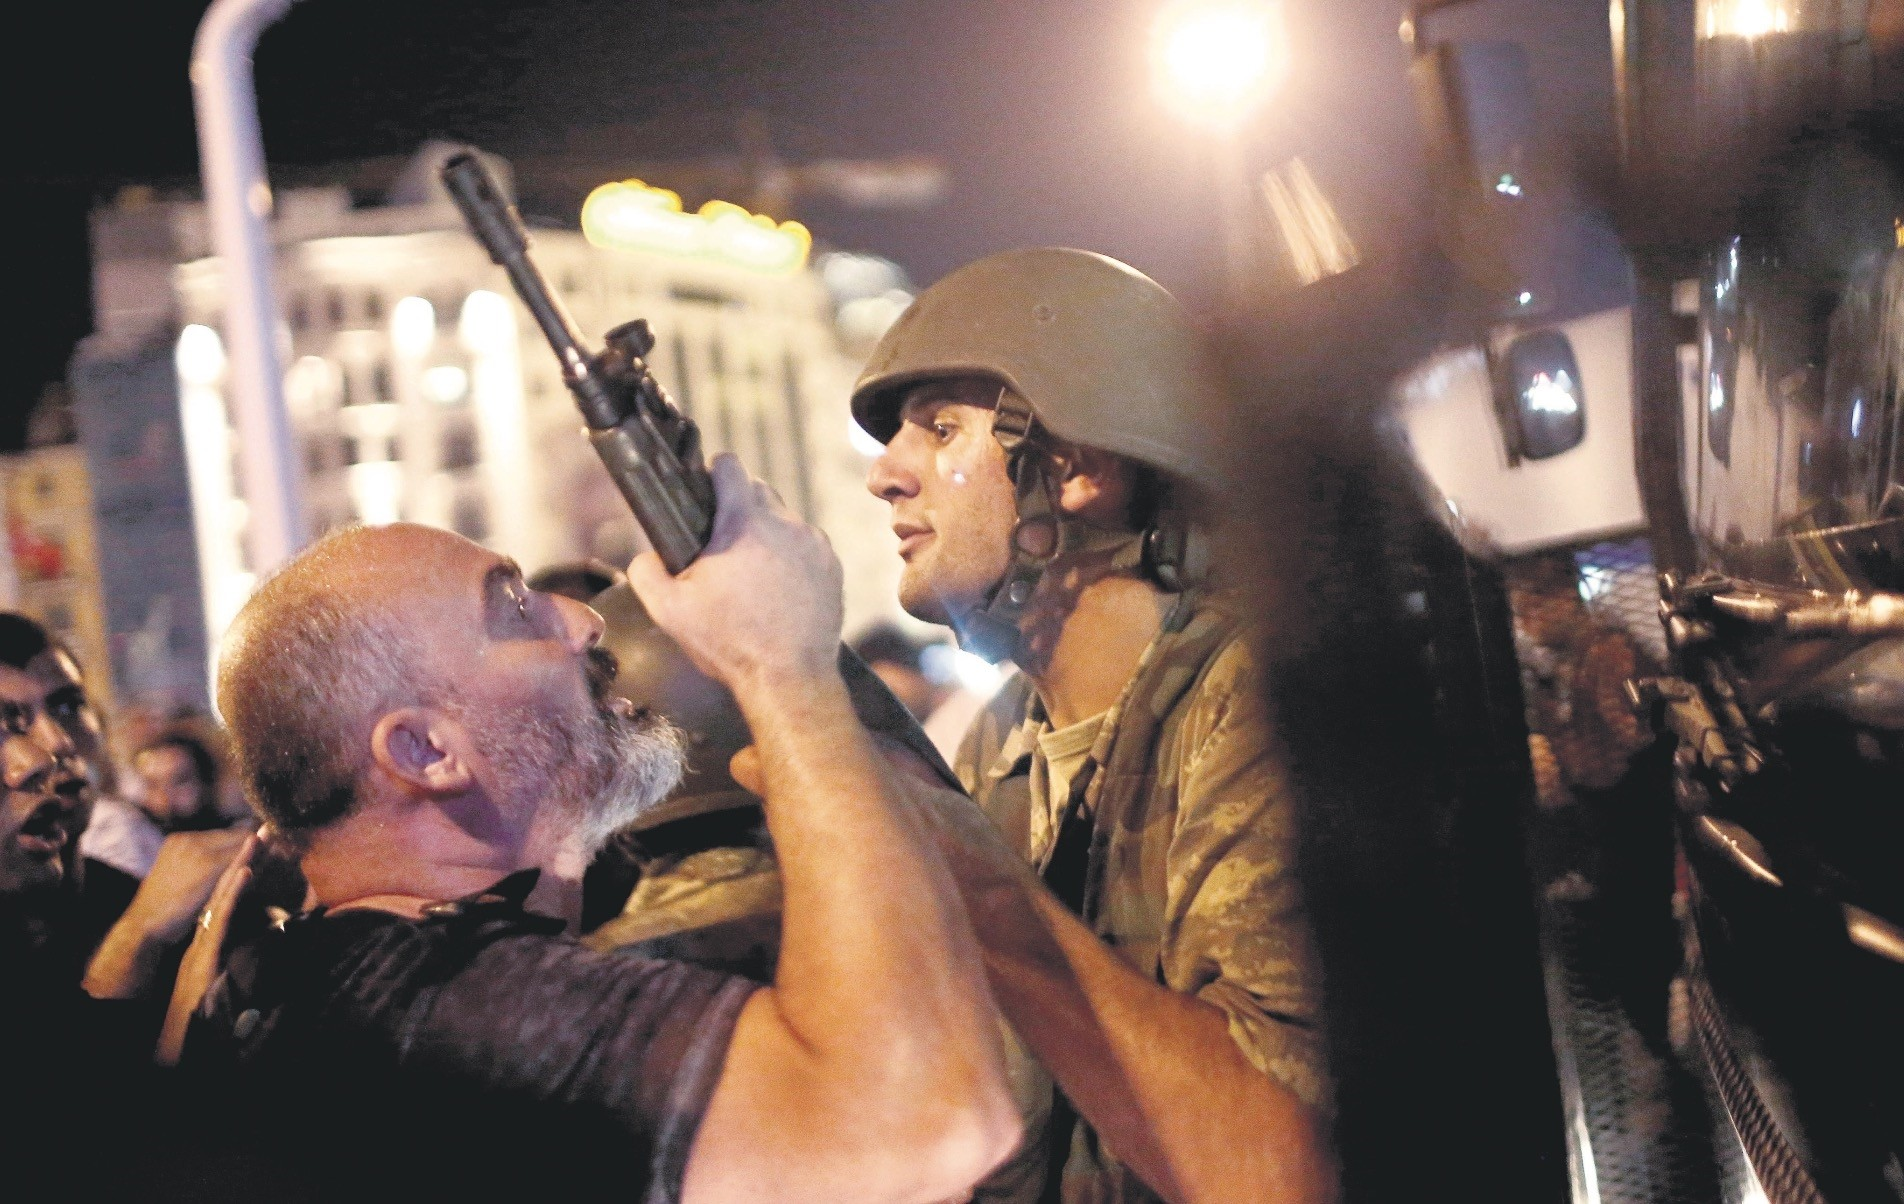 A civilian tries to take the rifle of a soldier at Istanbulu2019s Taksim Square. This act of resistance was just one of the many that became a symbol of the people's defense of democracy against the coup attempt.